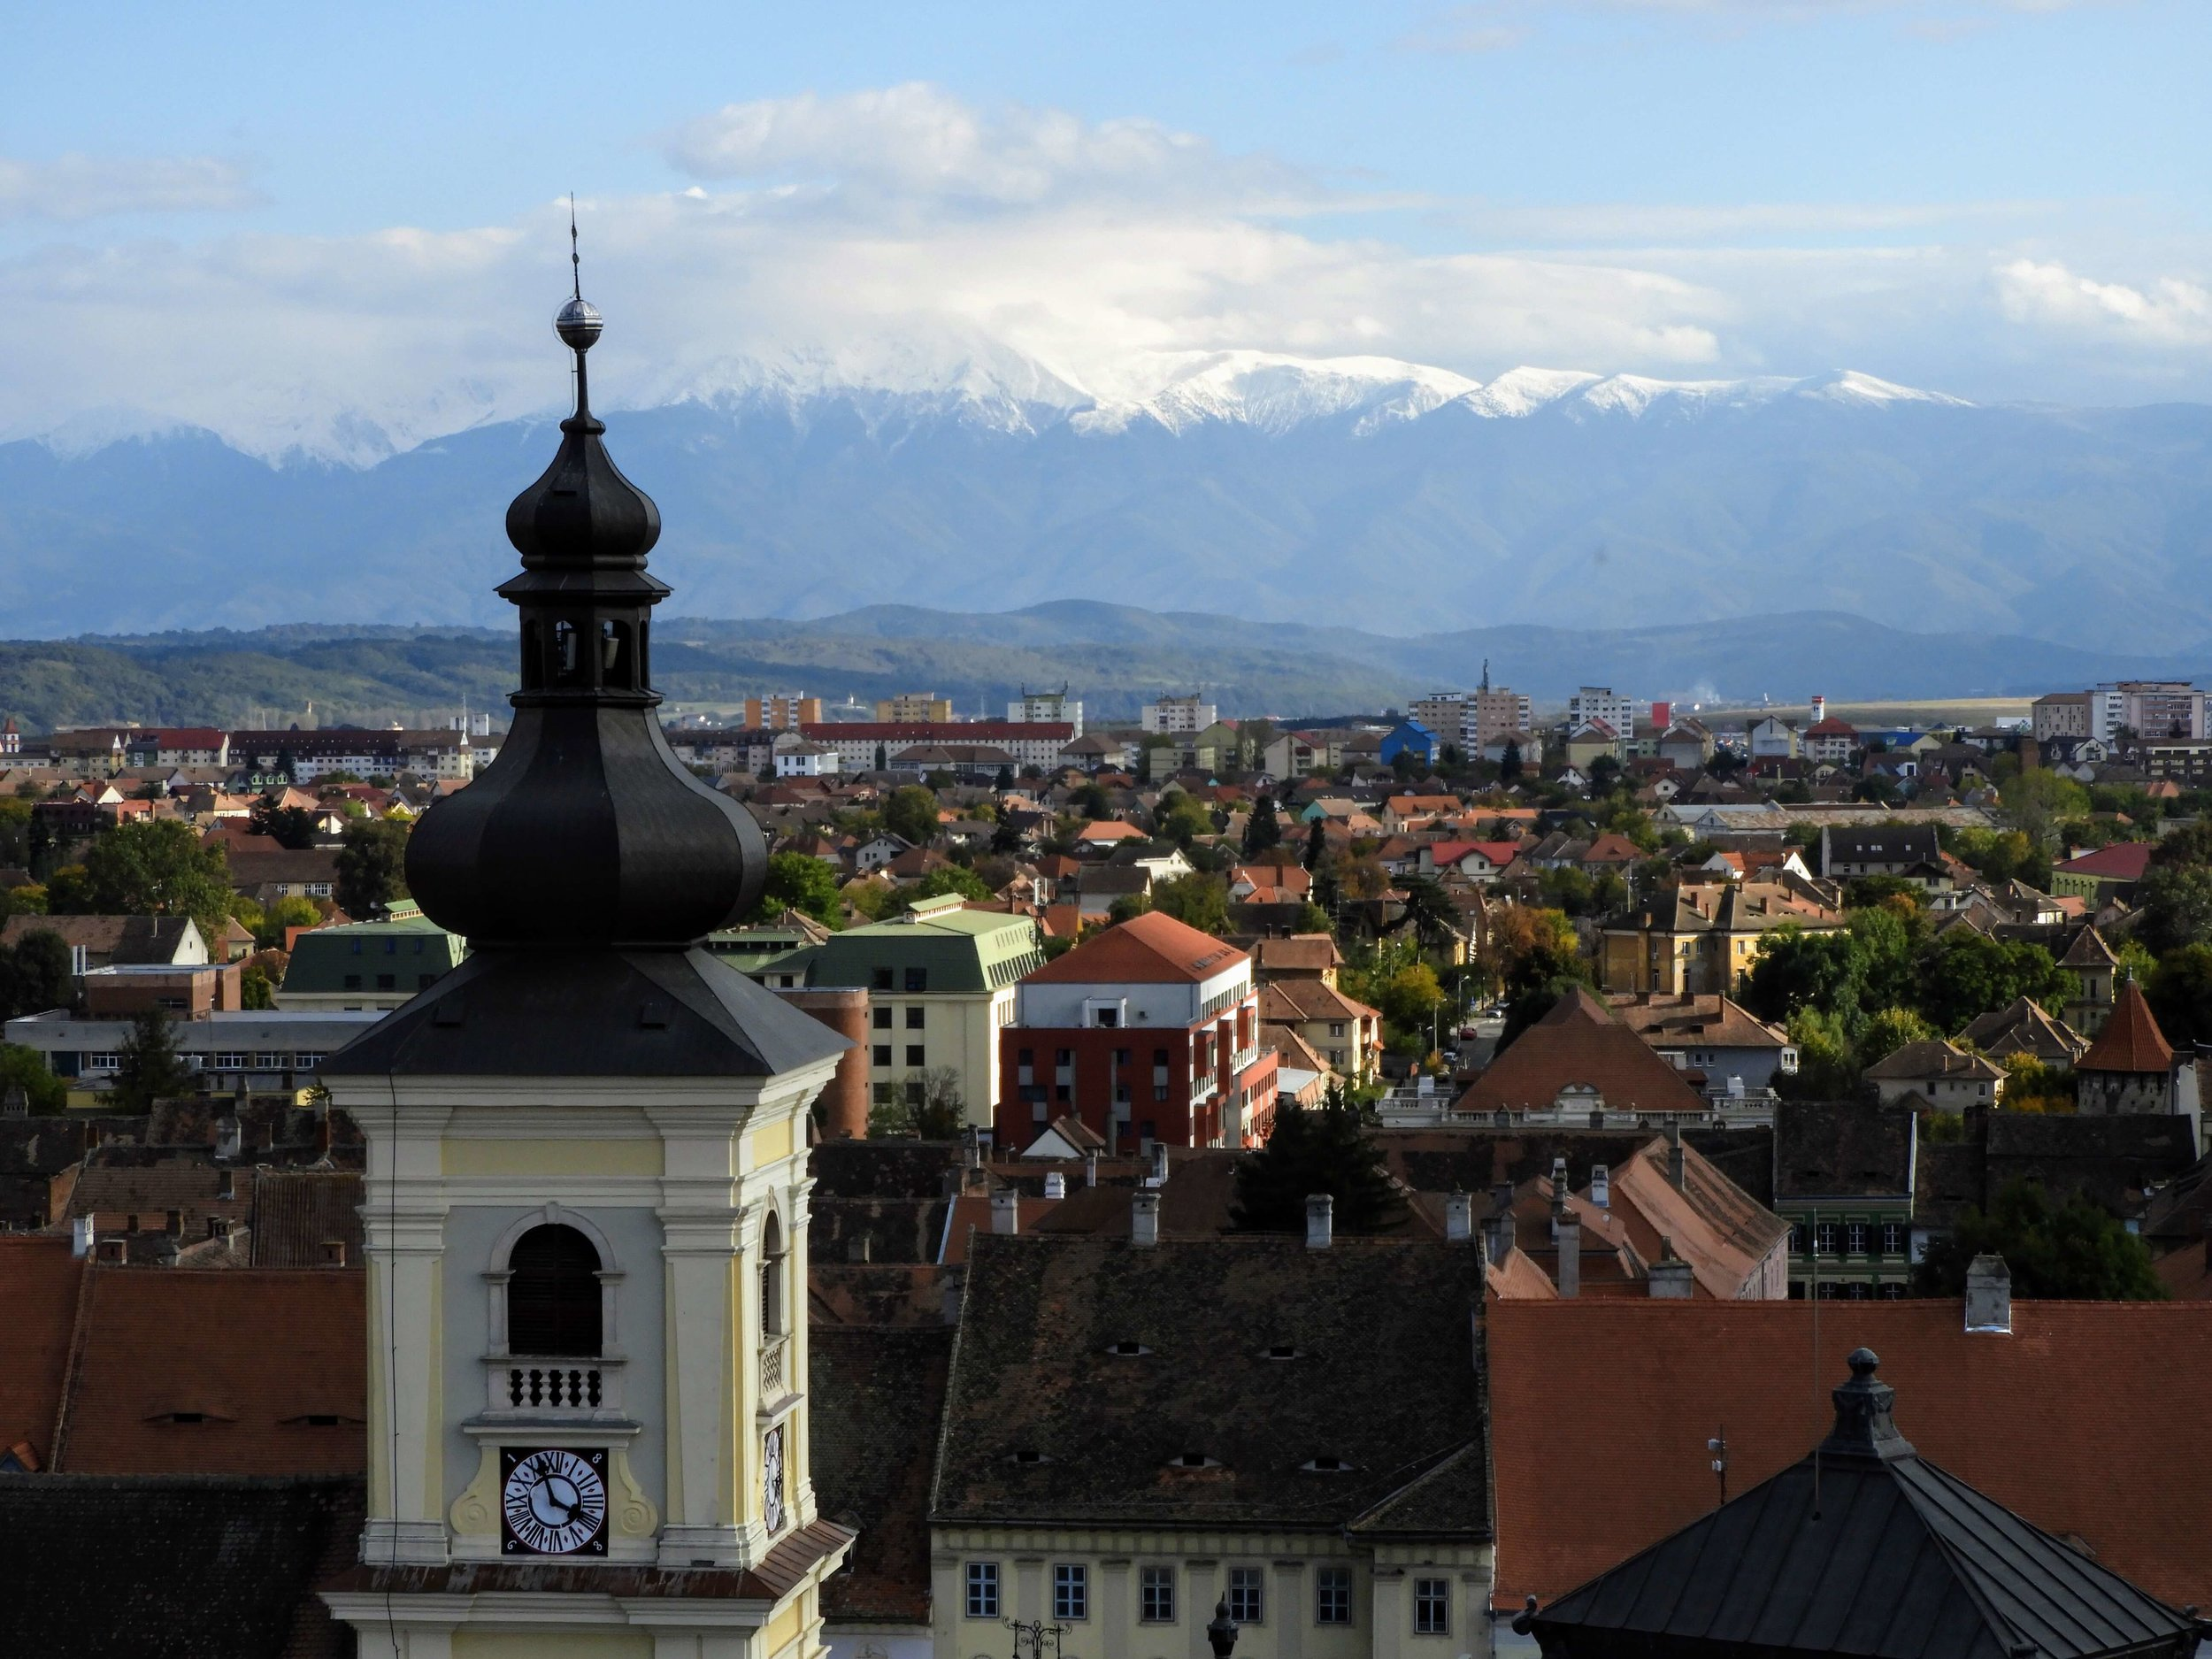 romania-sibiu-church-tower-mountains-snow.JPG